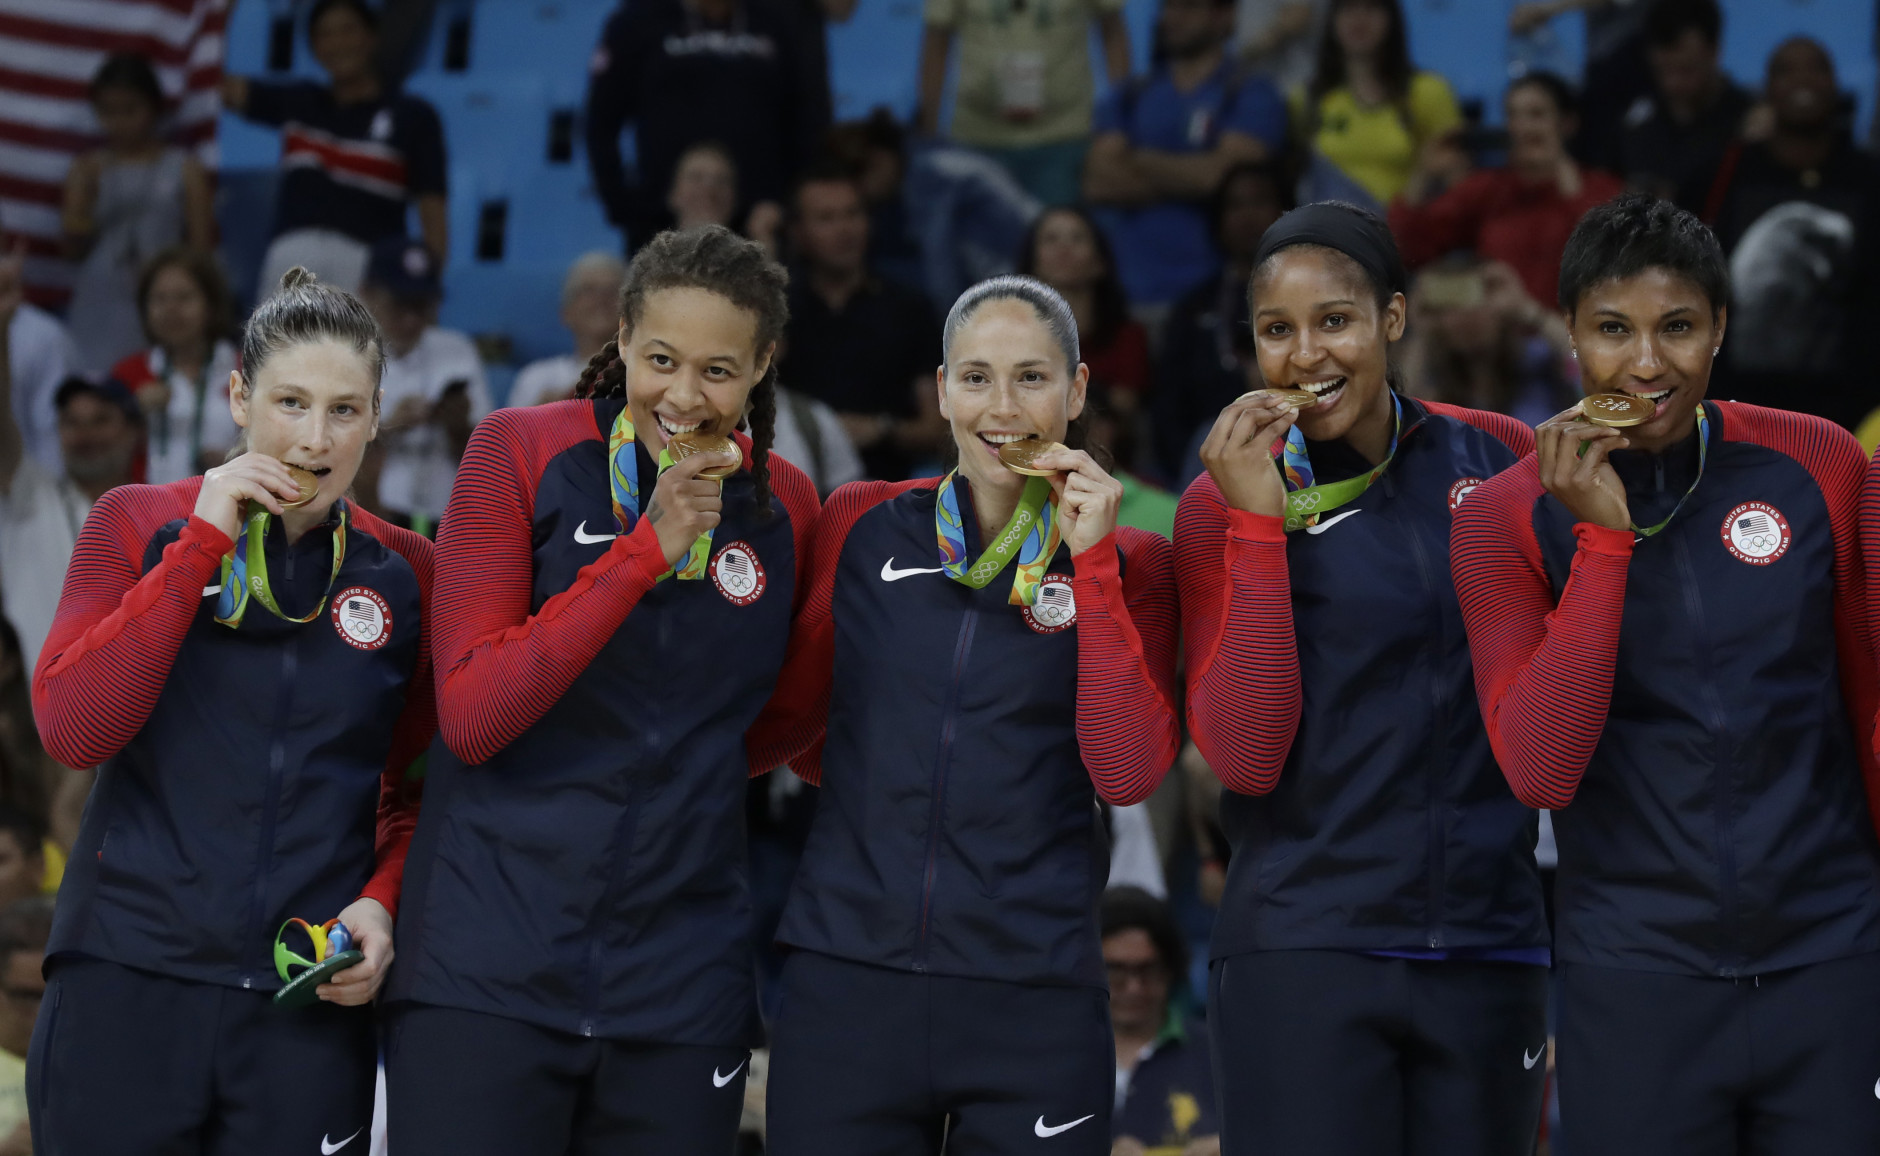 United States' Lindsay Whalen, from left, Seimone Augustus, Sue Bird, Maya Moore and Angel McCoughtry, pose with their gold medals after their win over Spain in a women's gold medal basketball game at the 2016 Summer Olympics in Rio de Janeiro, Brazil, Saturday, Aug. 20, 2016. (AP Photo/Eric Gay)